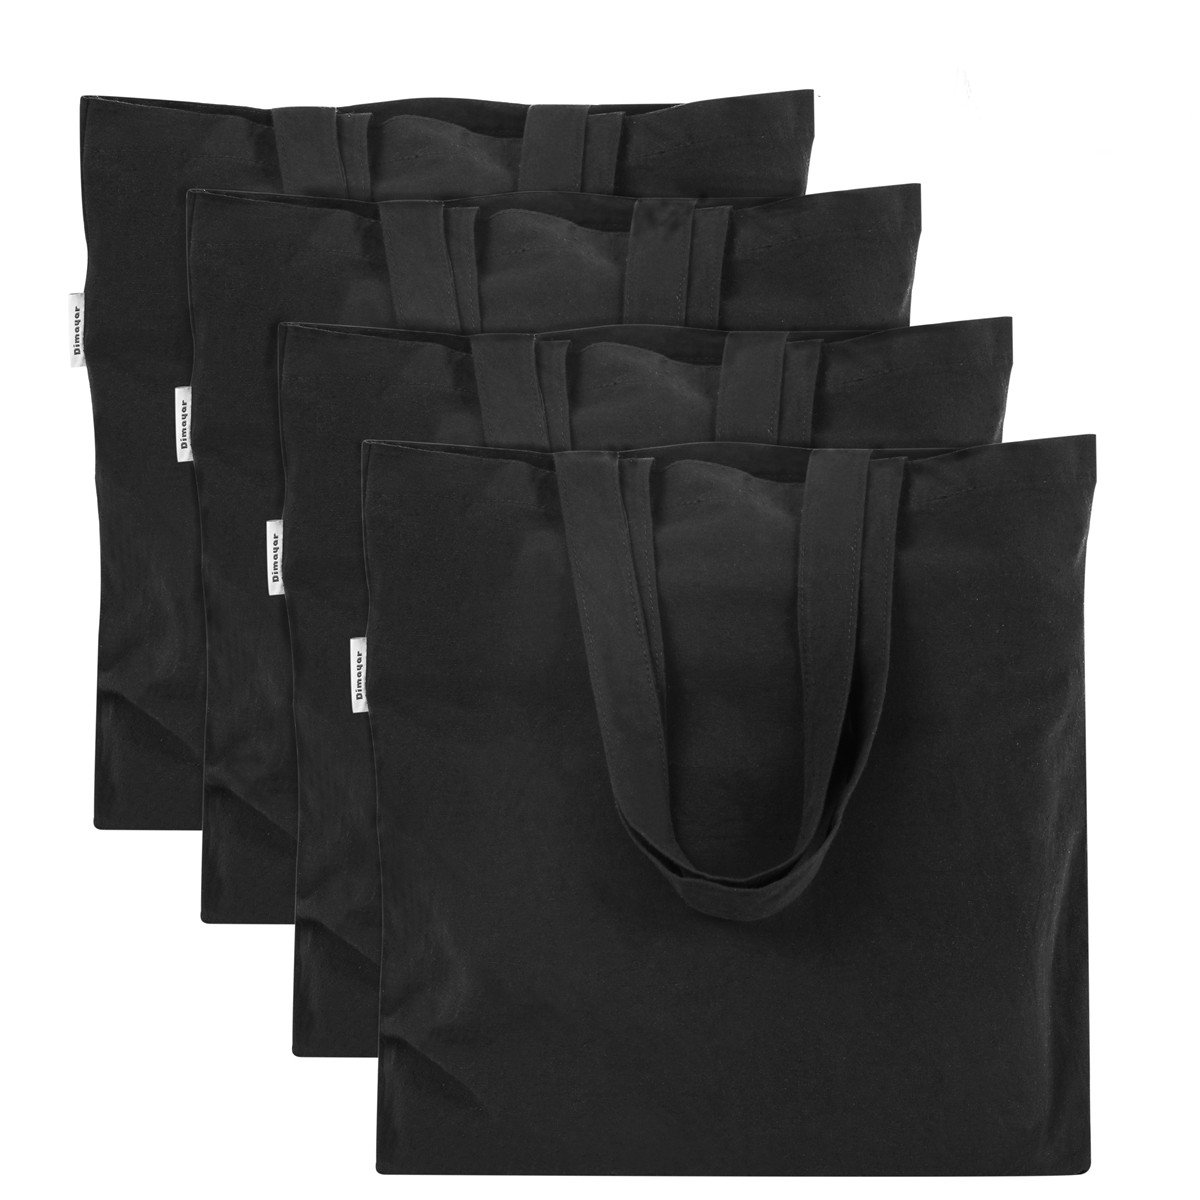 Canvas Bag by Dimayar 4pcs Washable Canvas Shopping Bag Resuable Grocery Bags Cloth Shopping Black Bags Canvas Tote Bag Perfect for Crafting Decorating